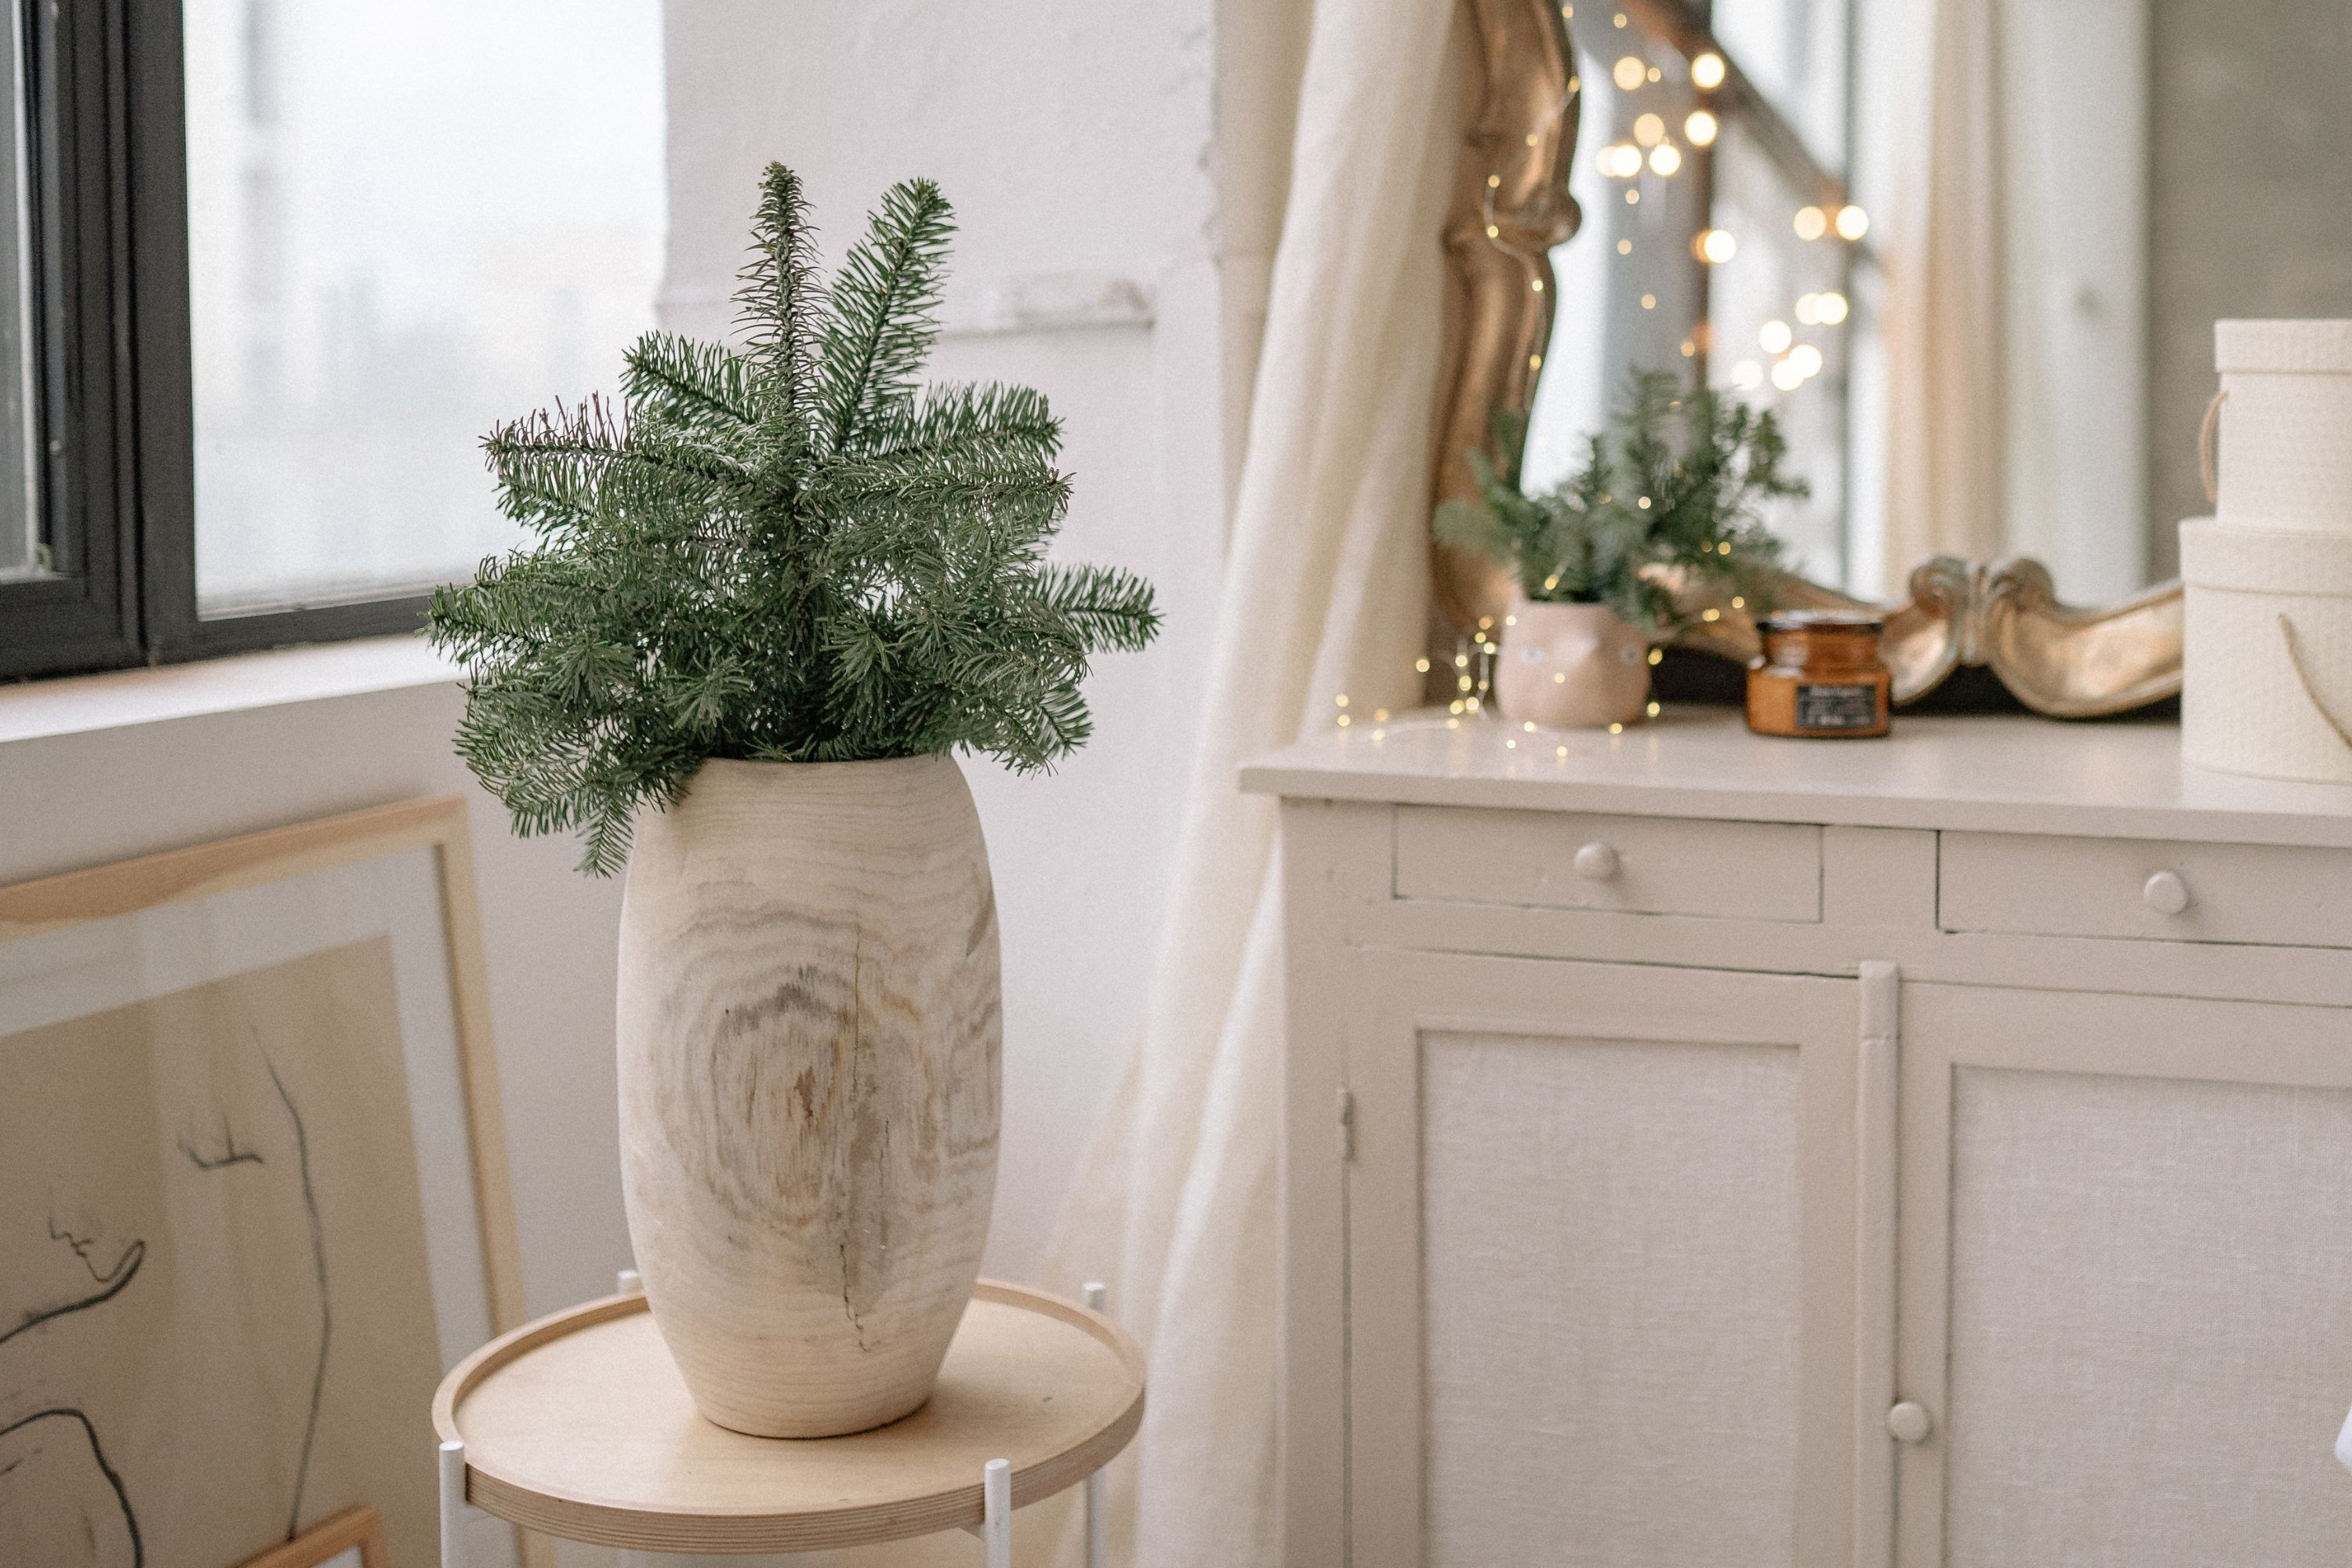 Christmas Gifts Ideas to Surprise Your Family and Friends vase